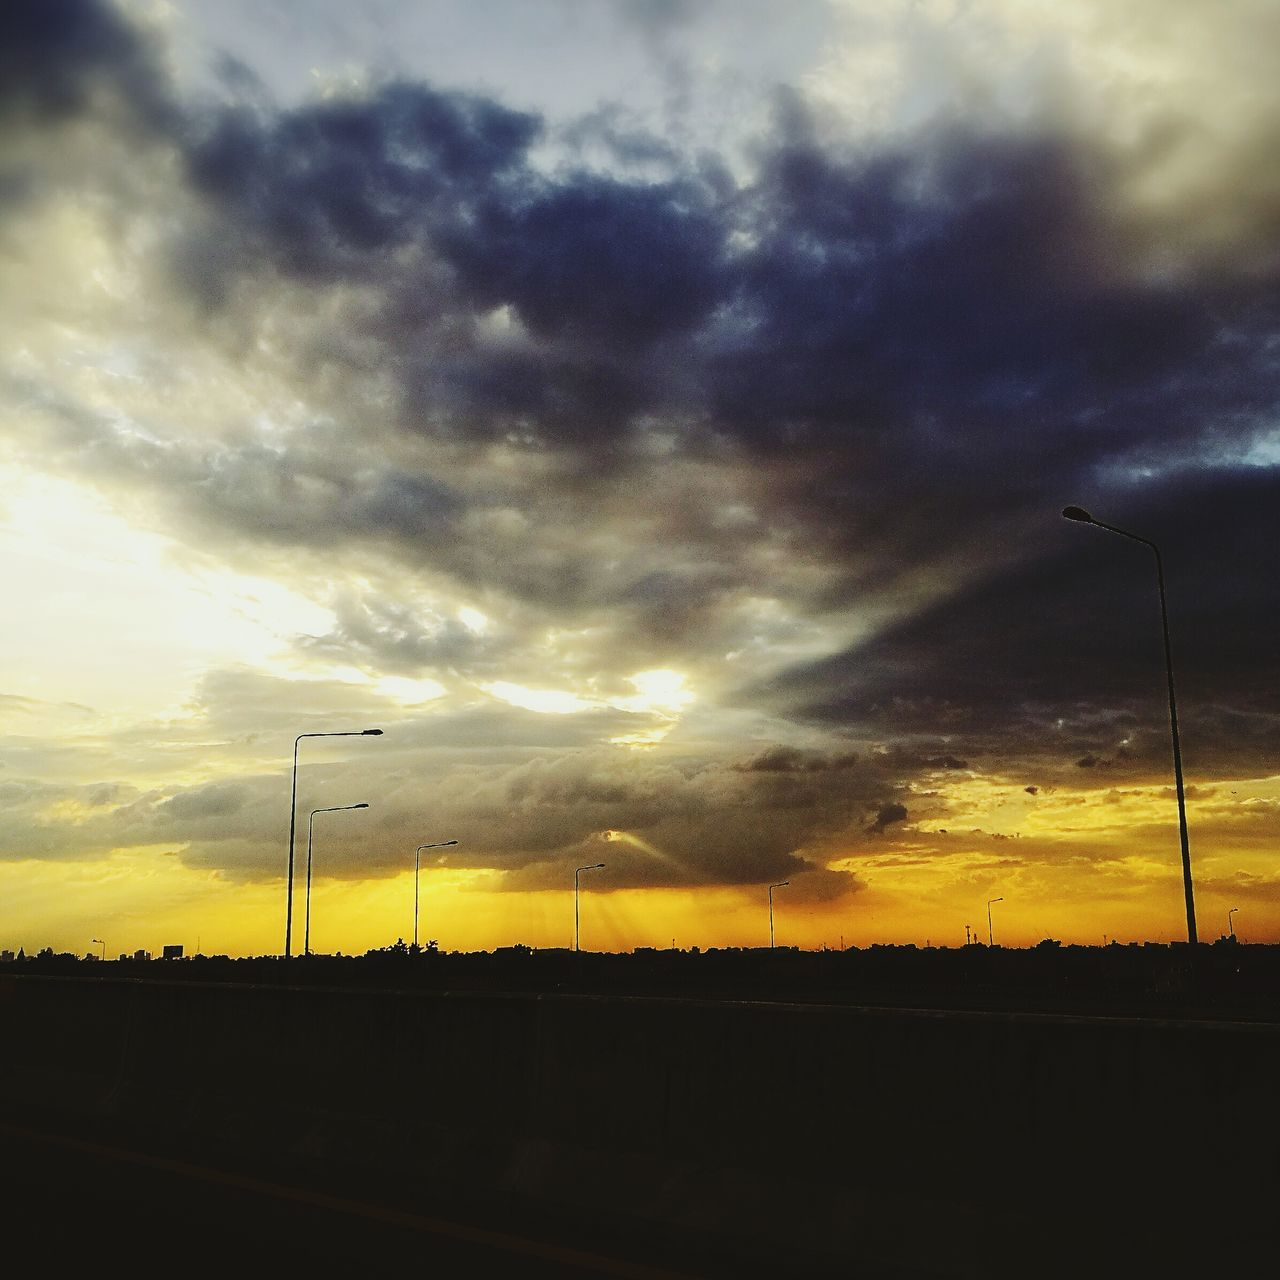 sunset, cloud - sky, sky, silhouette, no people, nature, tranquil scene, outdoors, street light, scenics, transportation, tranquility, cable, beauty in nature, landscape, road, tree, electricity pylon, telephone line, day